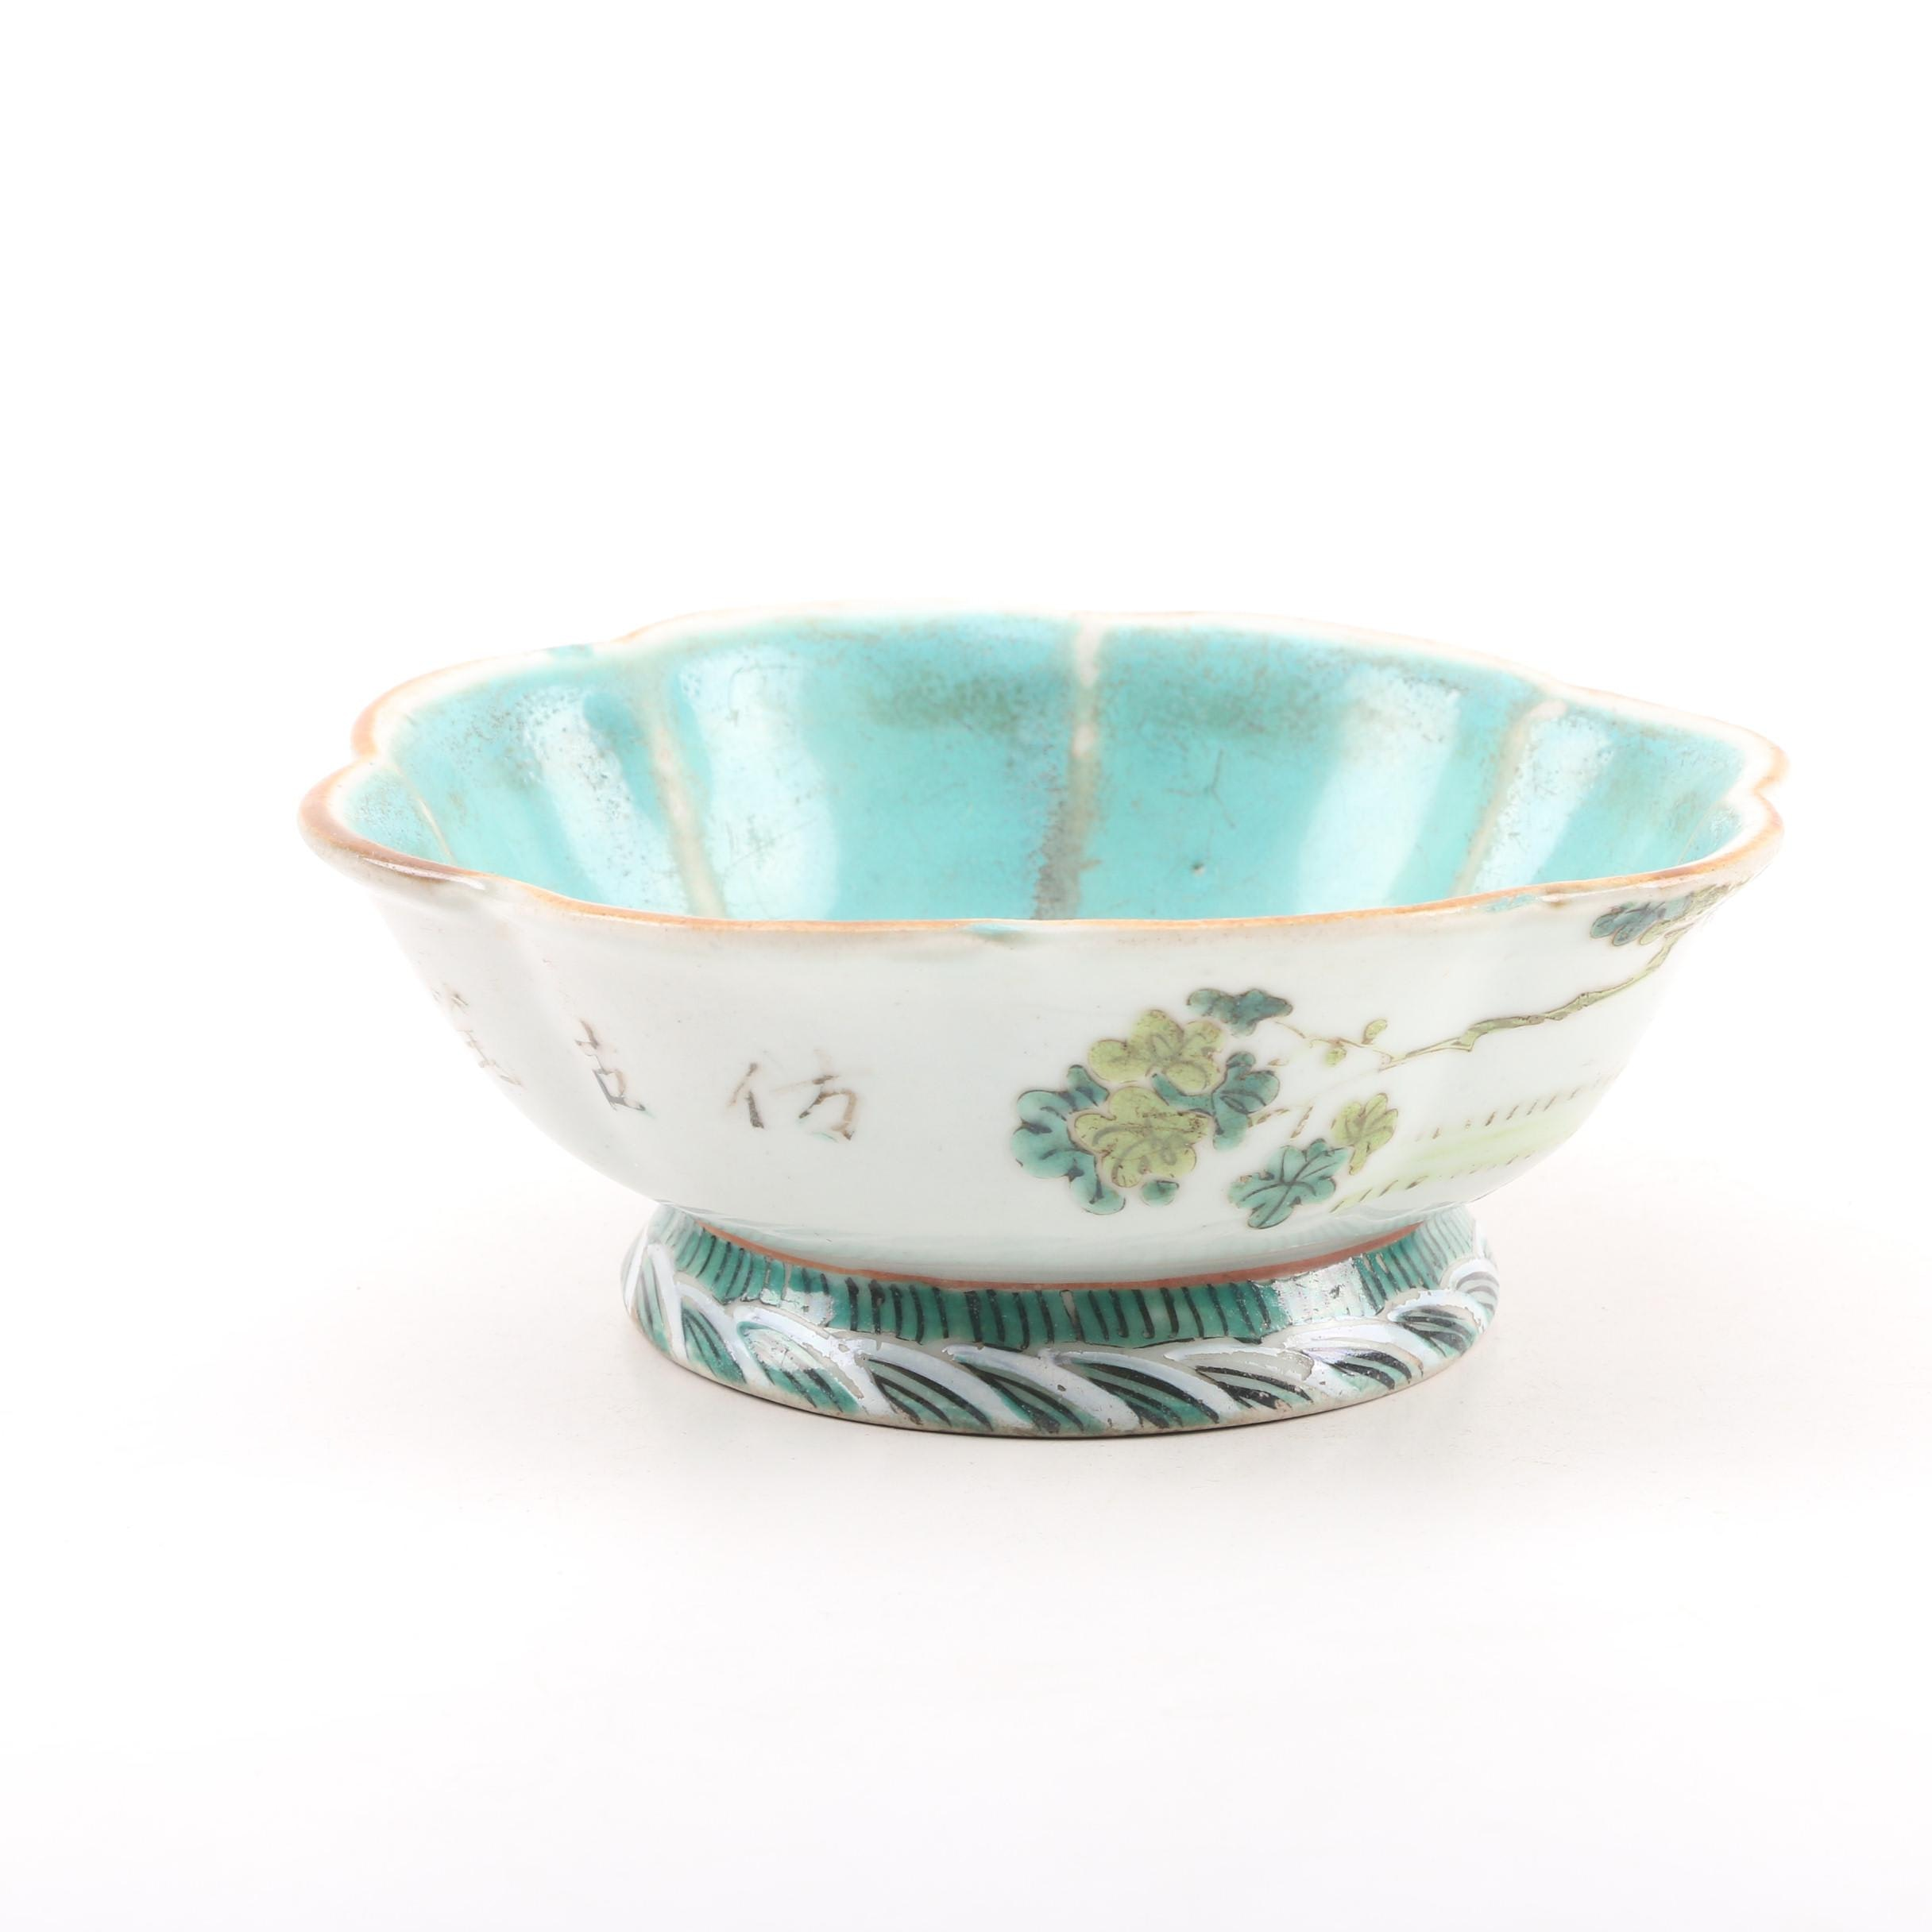 Late Qing Dynasty Porcelain Bowl